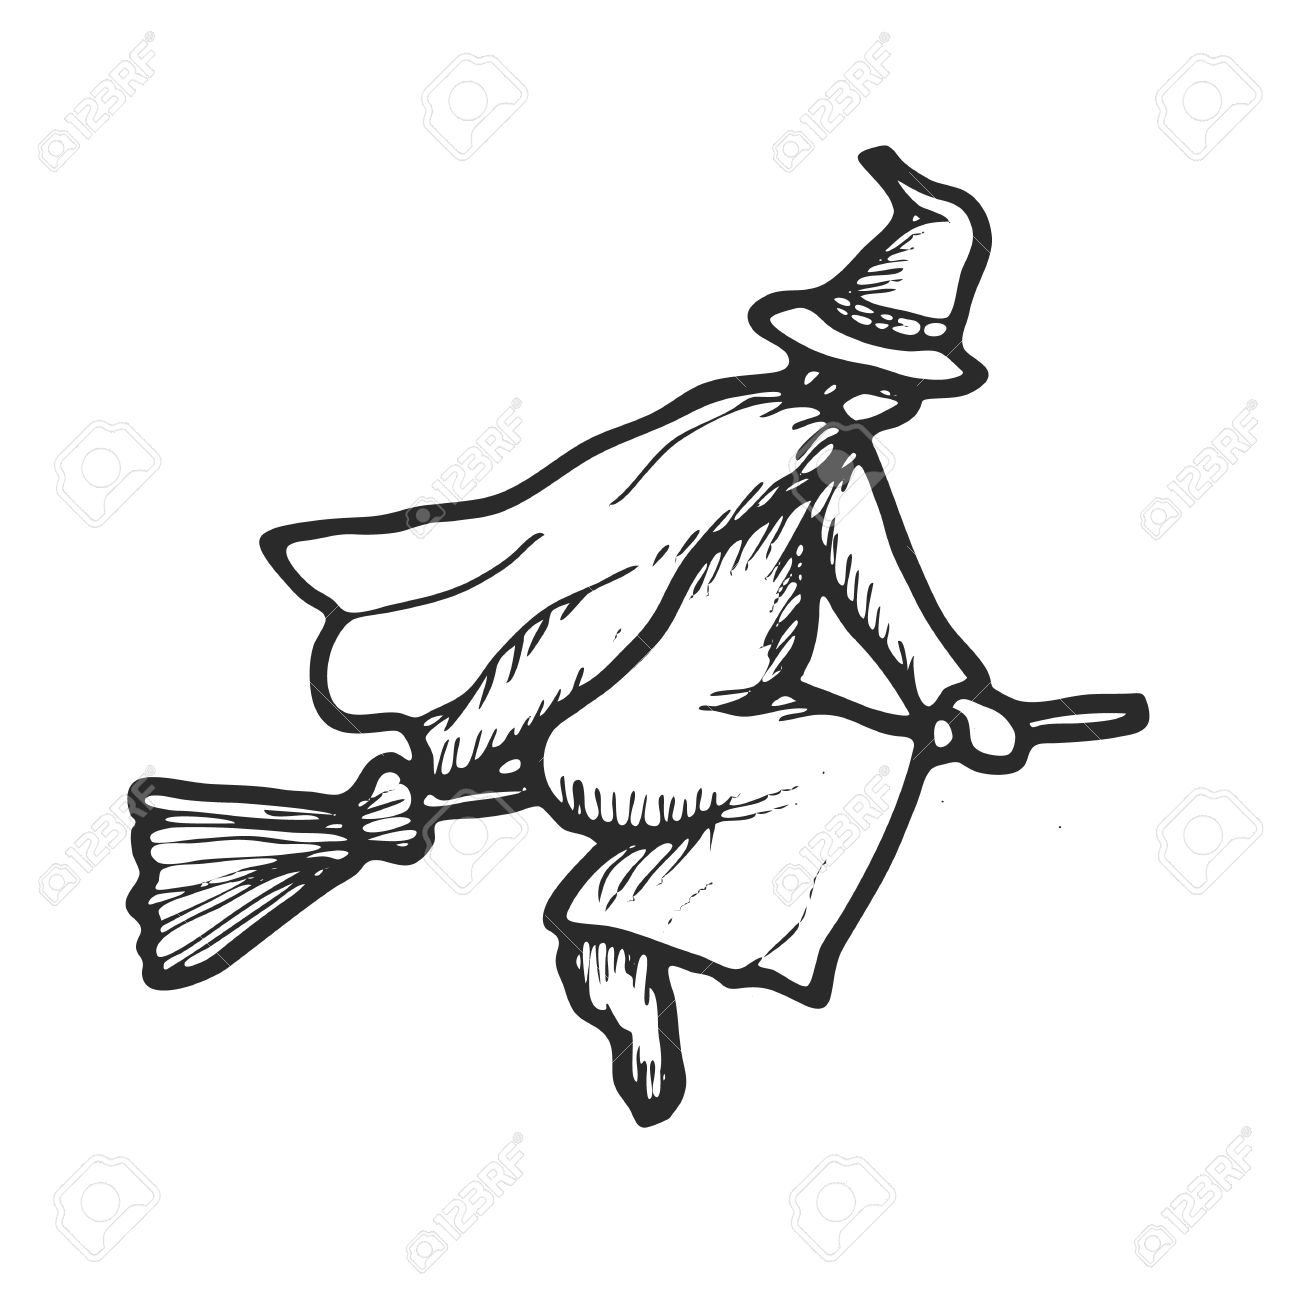 1300x1300 Hand Drawn Doodle Halloween Witch. Black Pen Objects Drawing